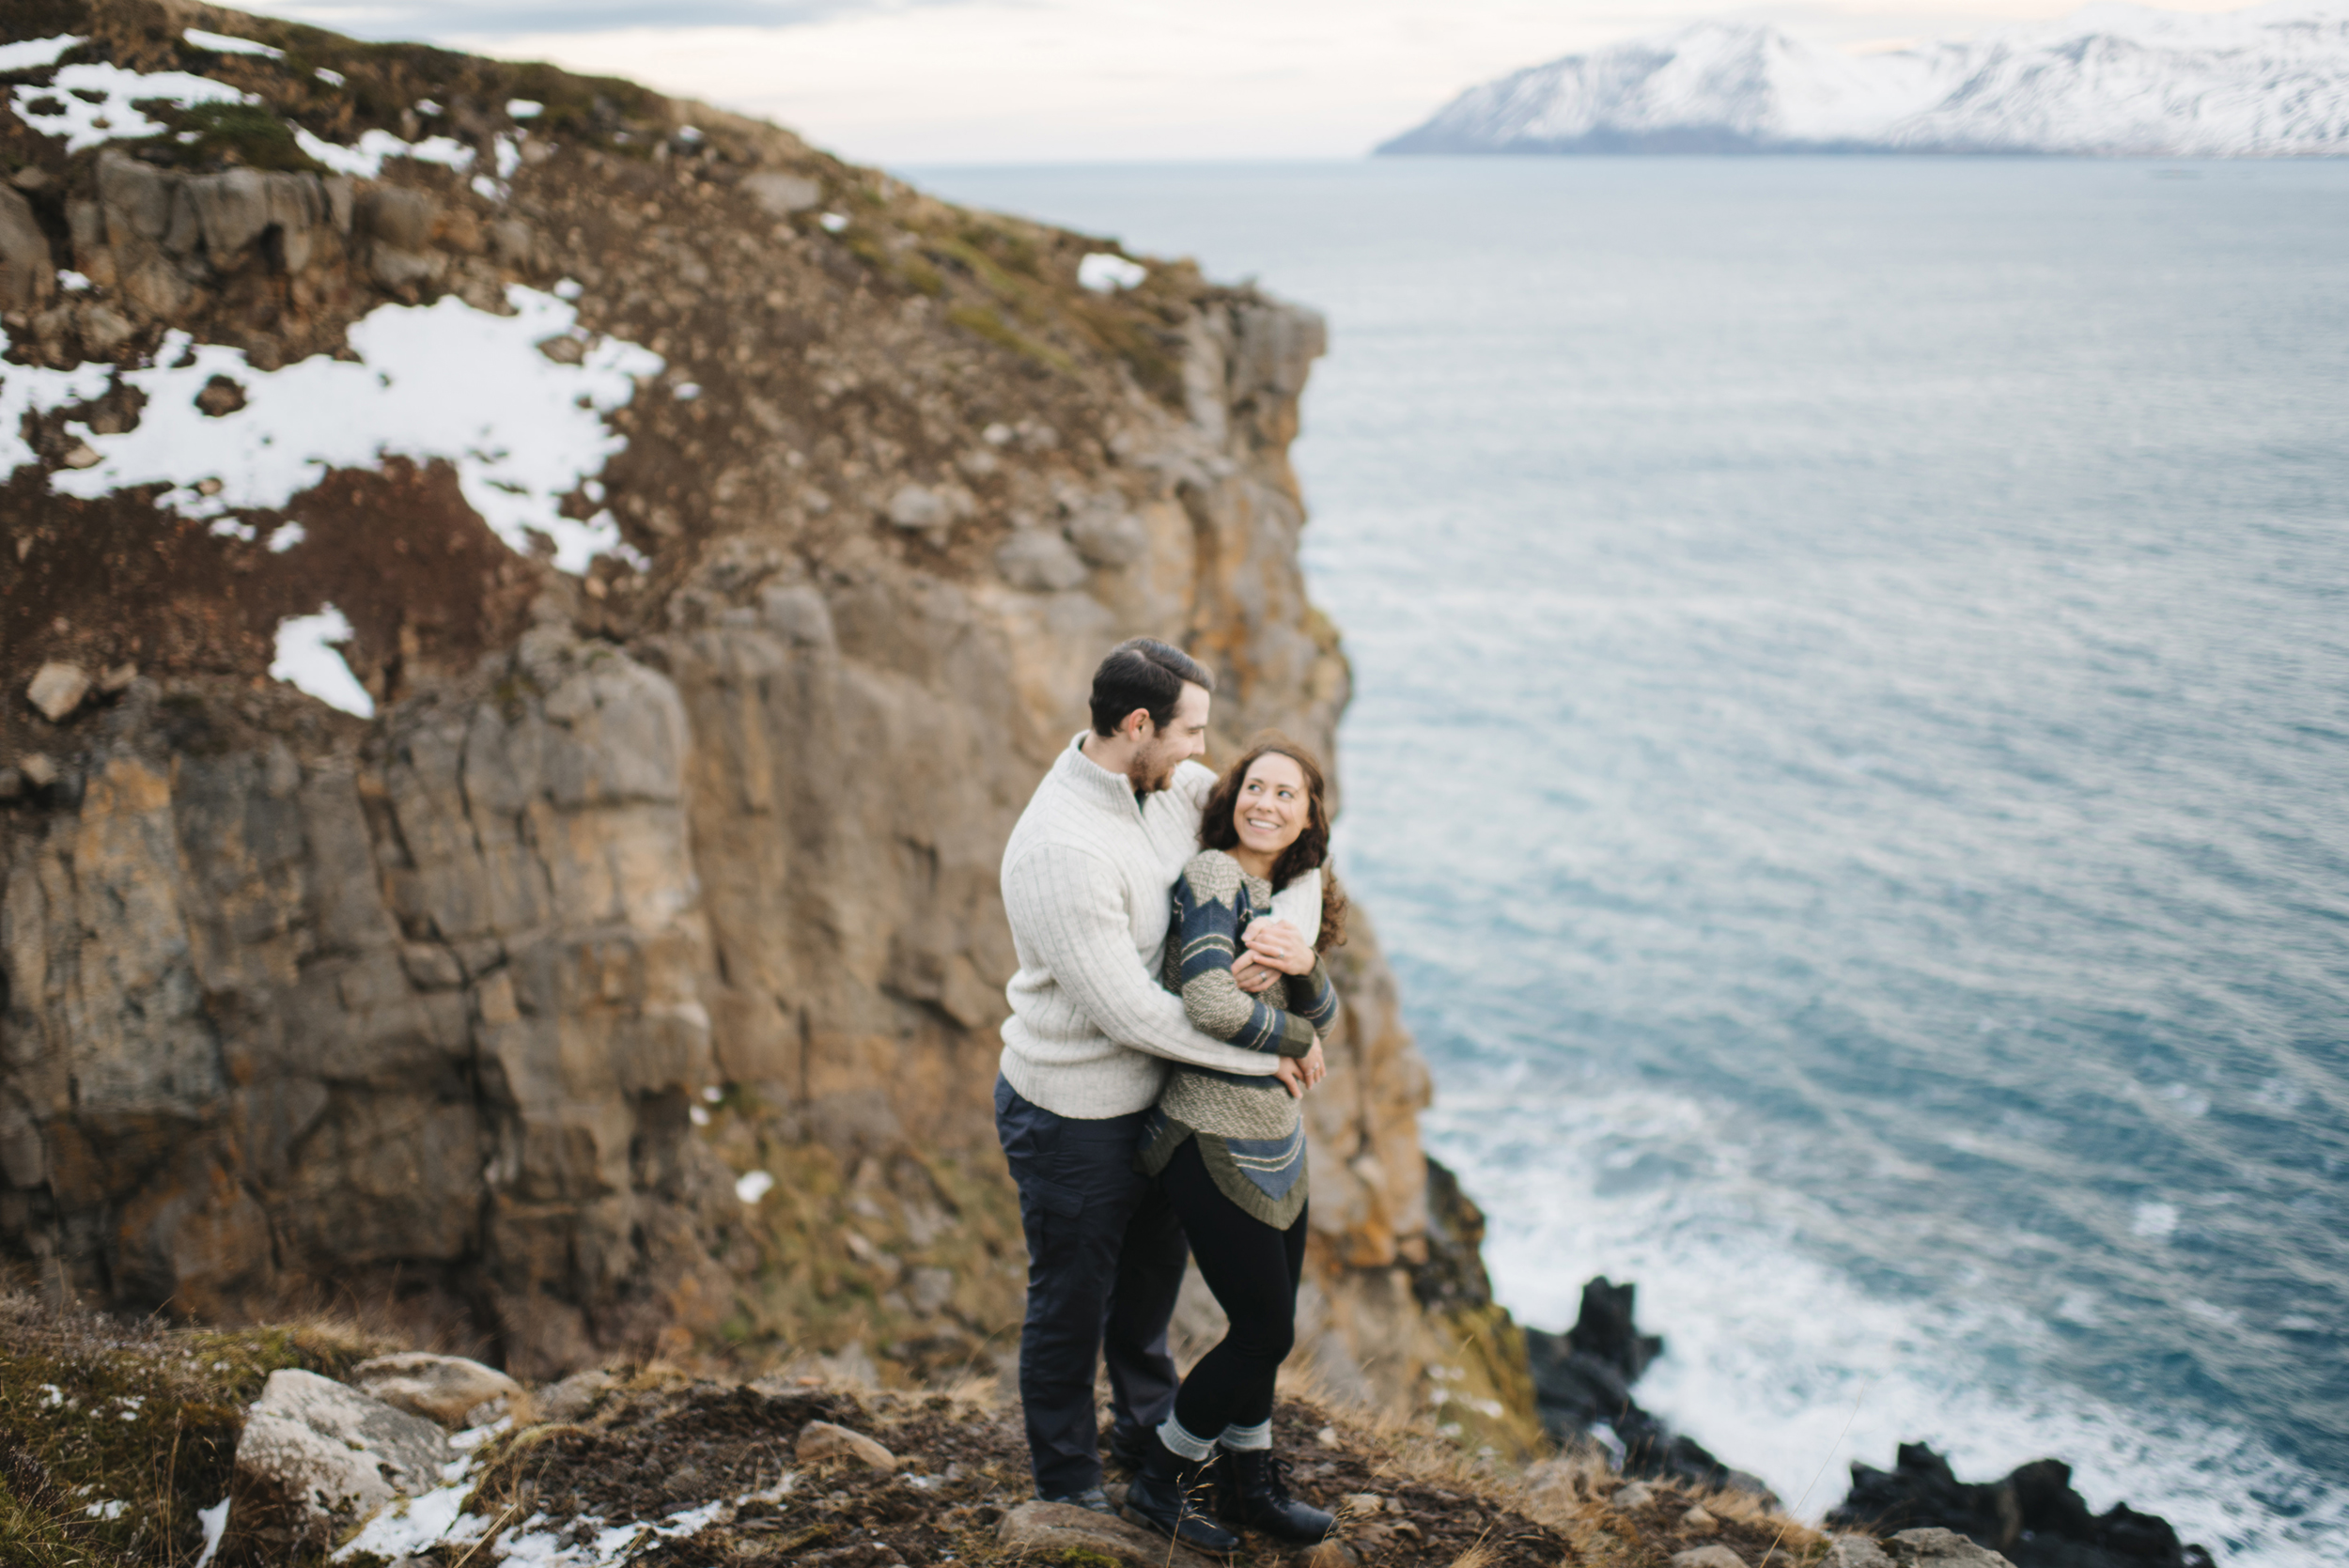 Iceland Adventure Engagement Photographer125.JPG